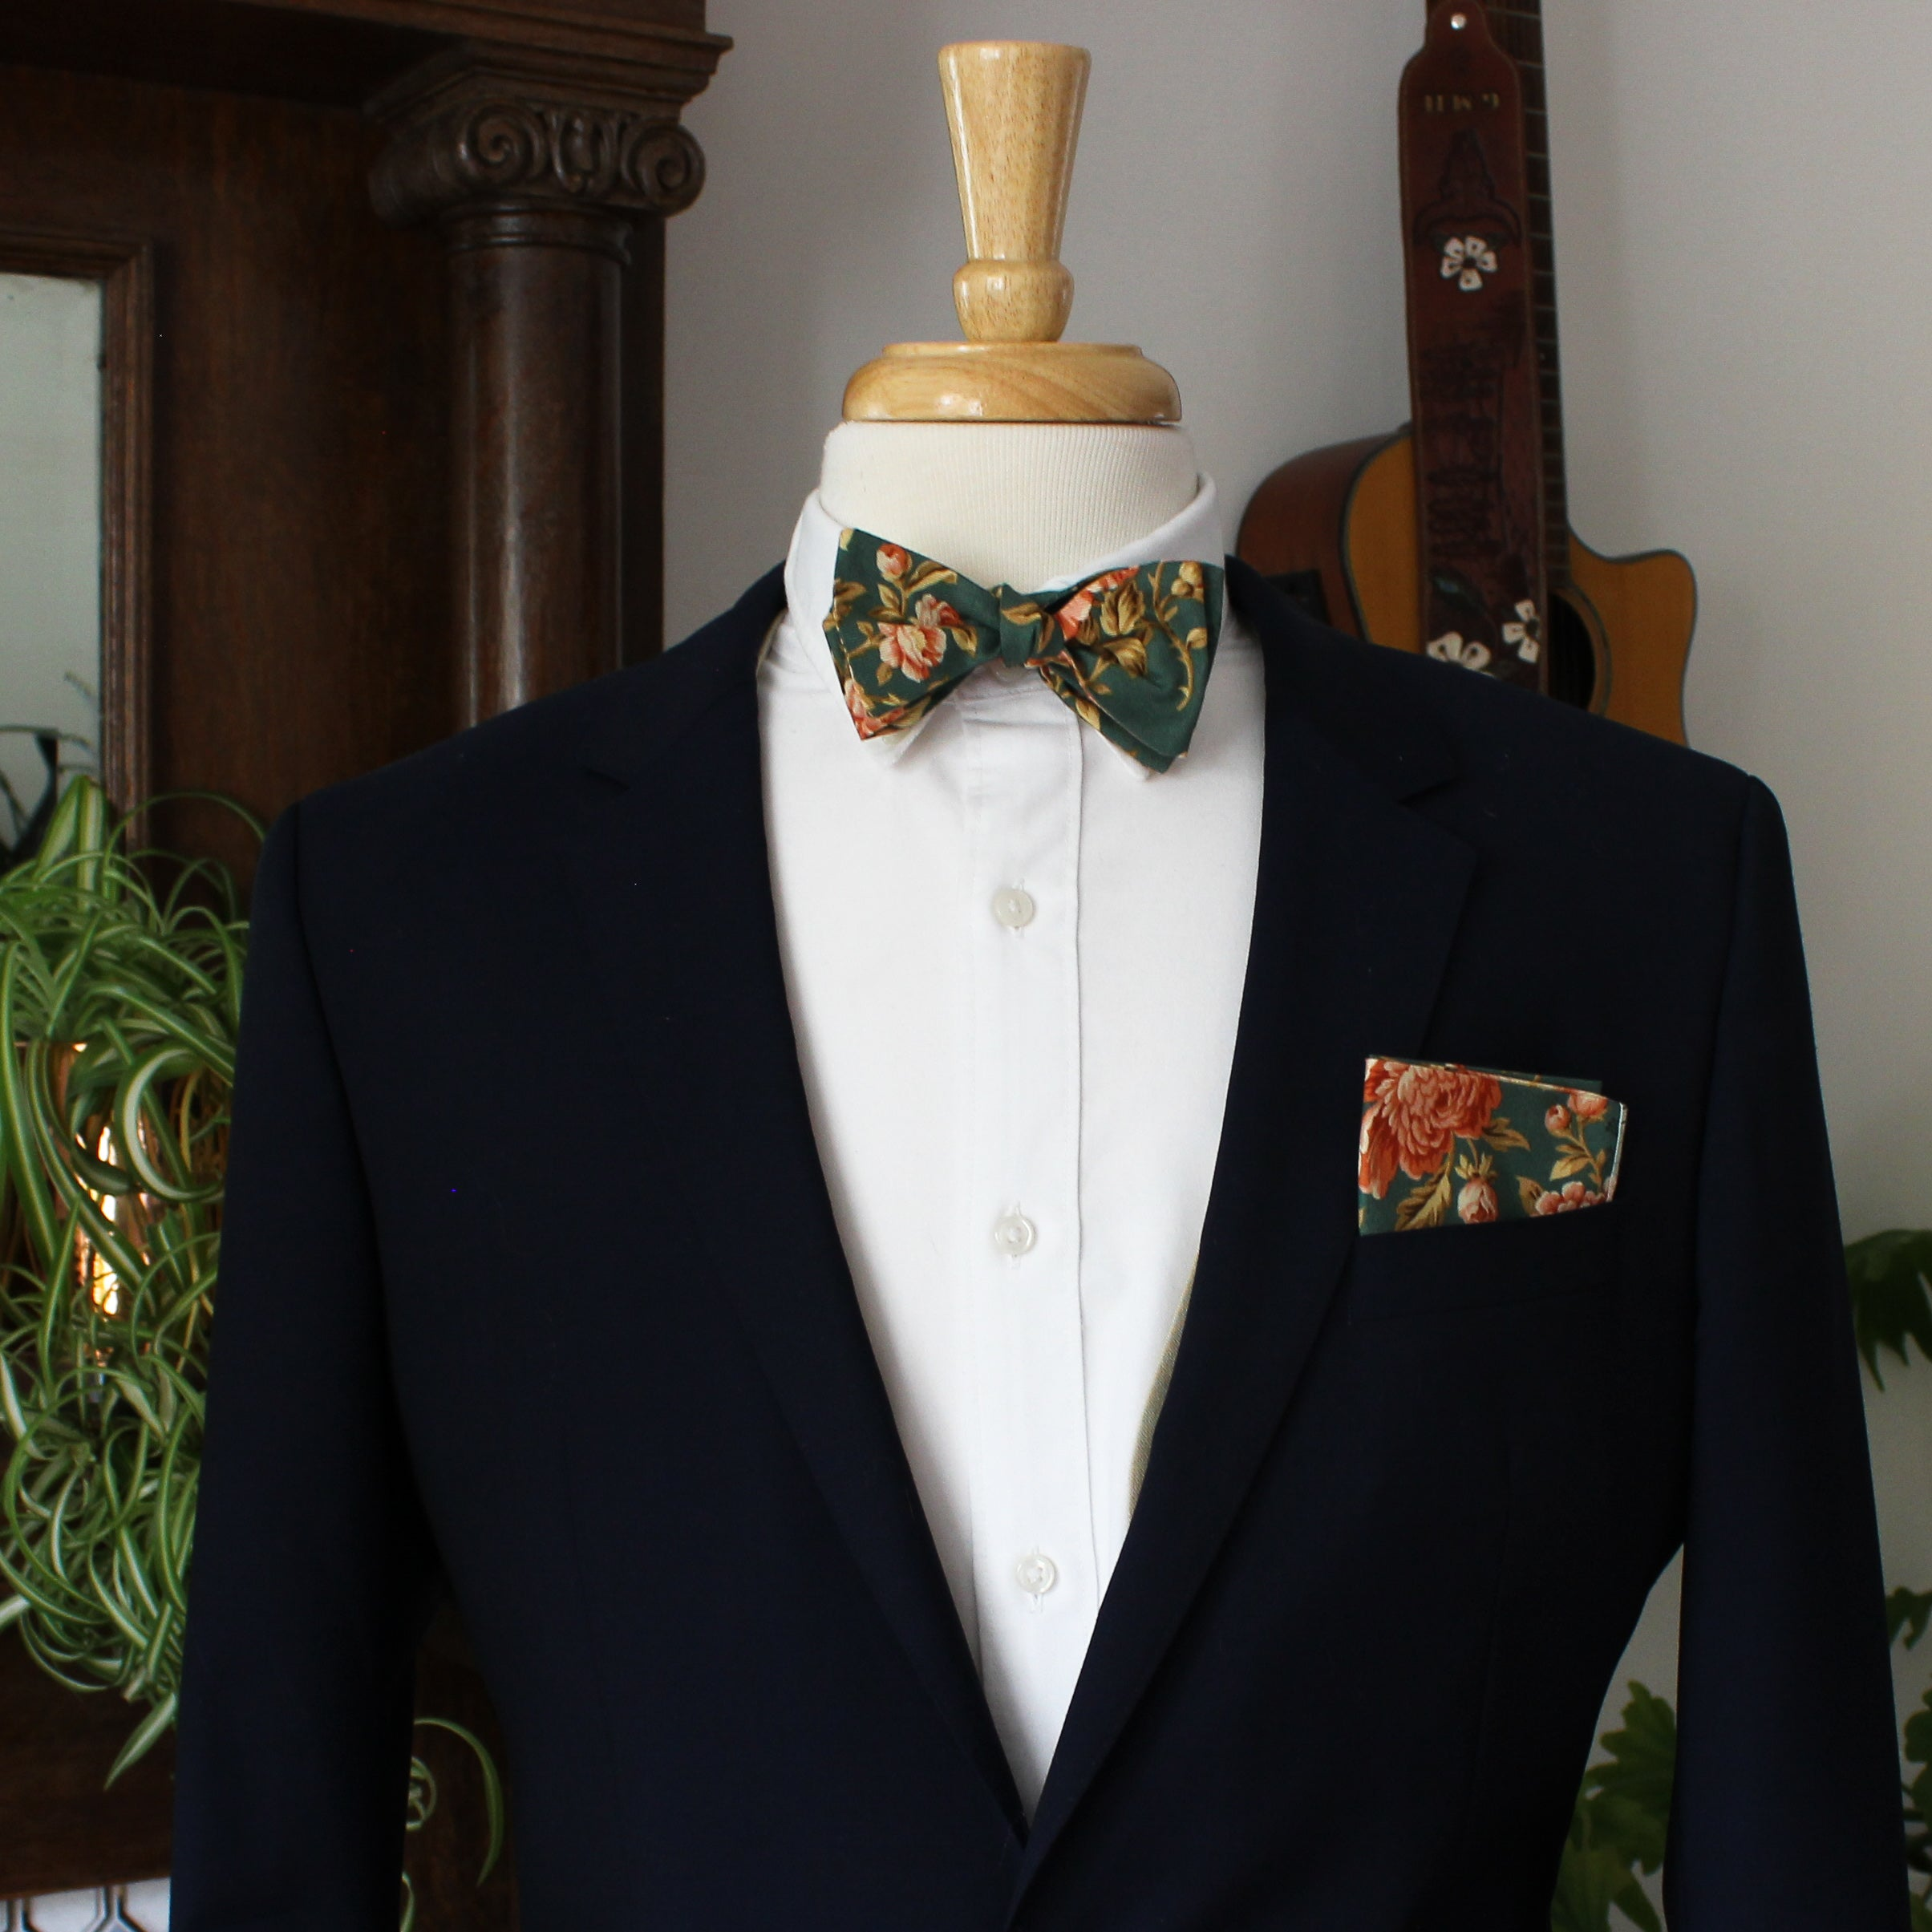 Antique Rose in Green Bow Tie